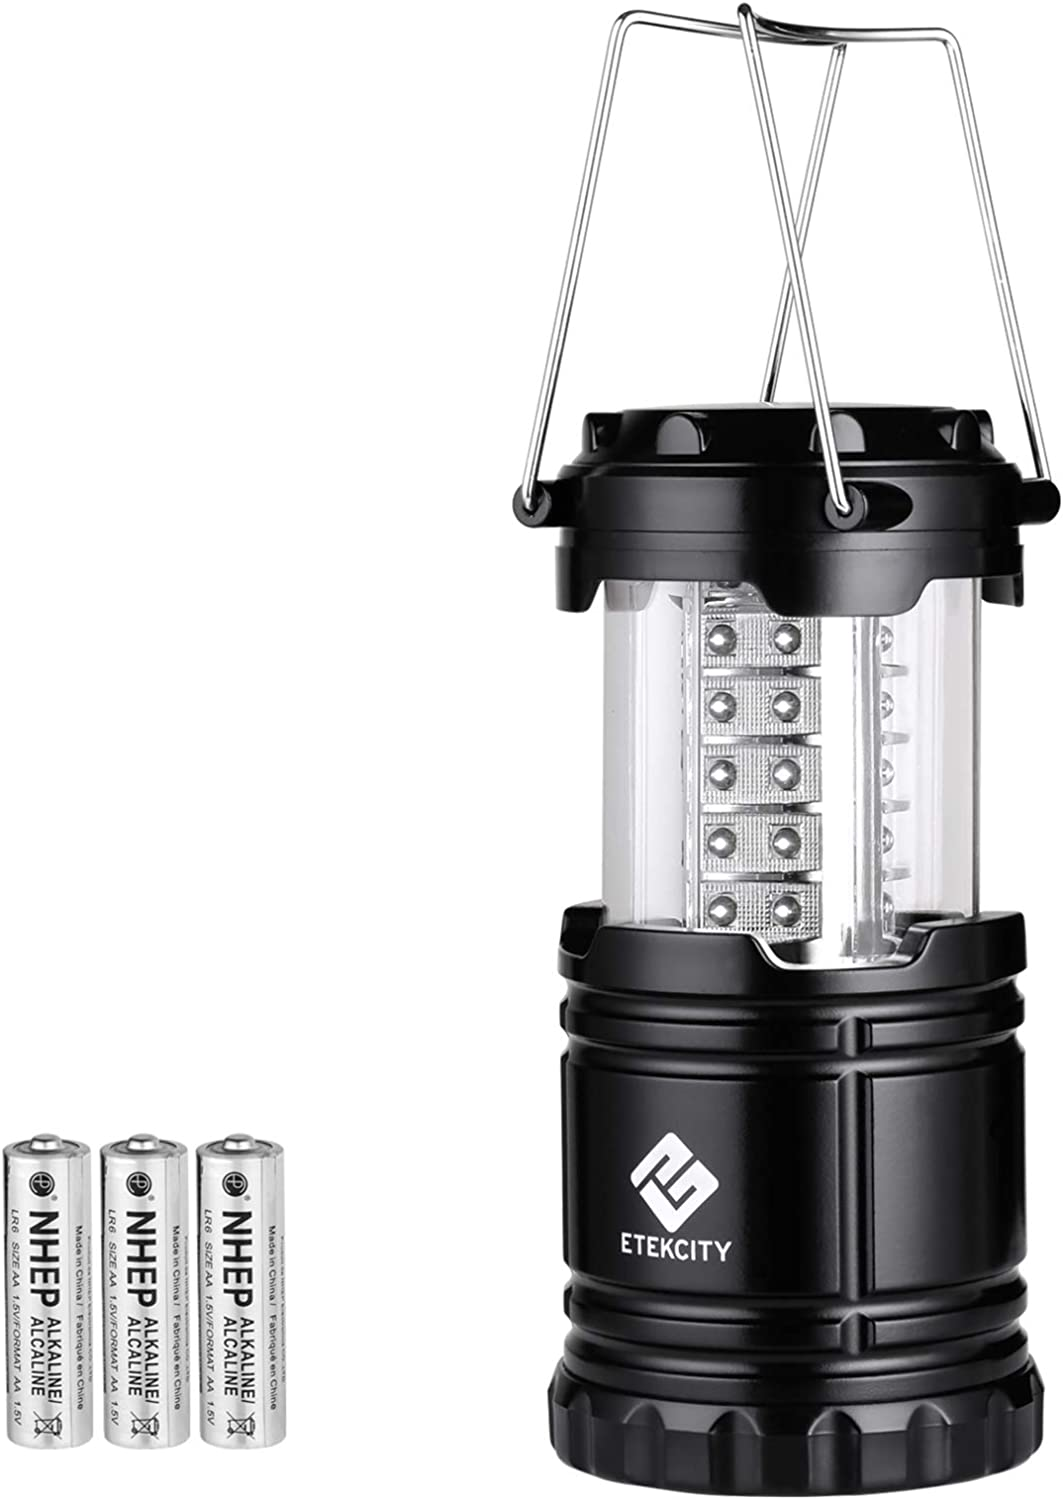 Etekcity Lantern Camping Battery Powe Lights Max 41% OFF Powered Now free shipping for